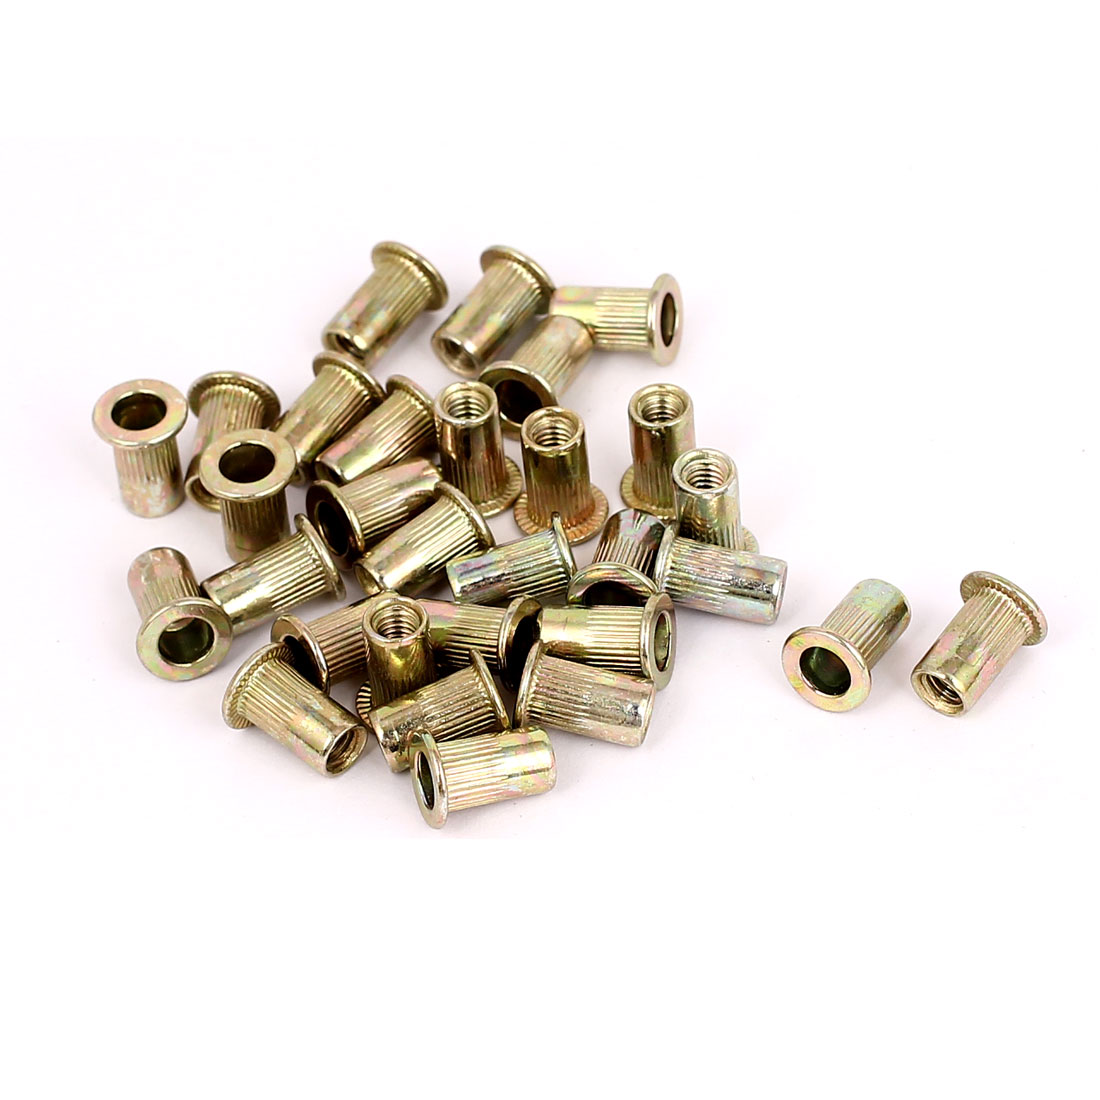 30pcs M4x11mm Carbon Steel Countersunk Head Blind Rivet Nut Nutserts